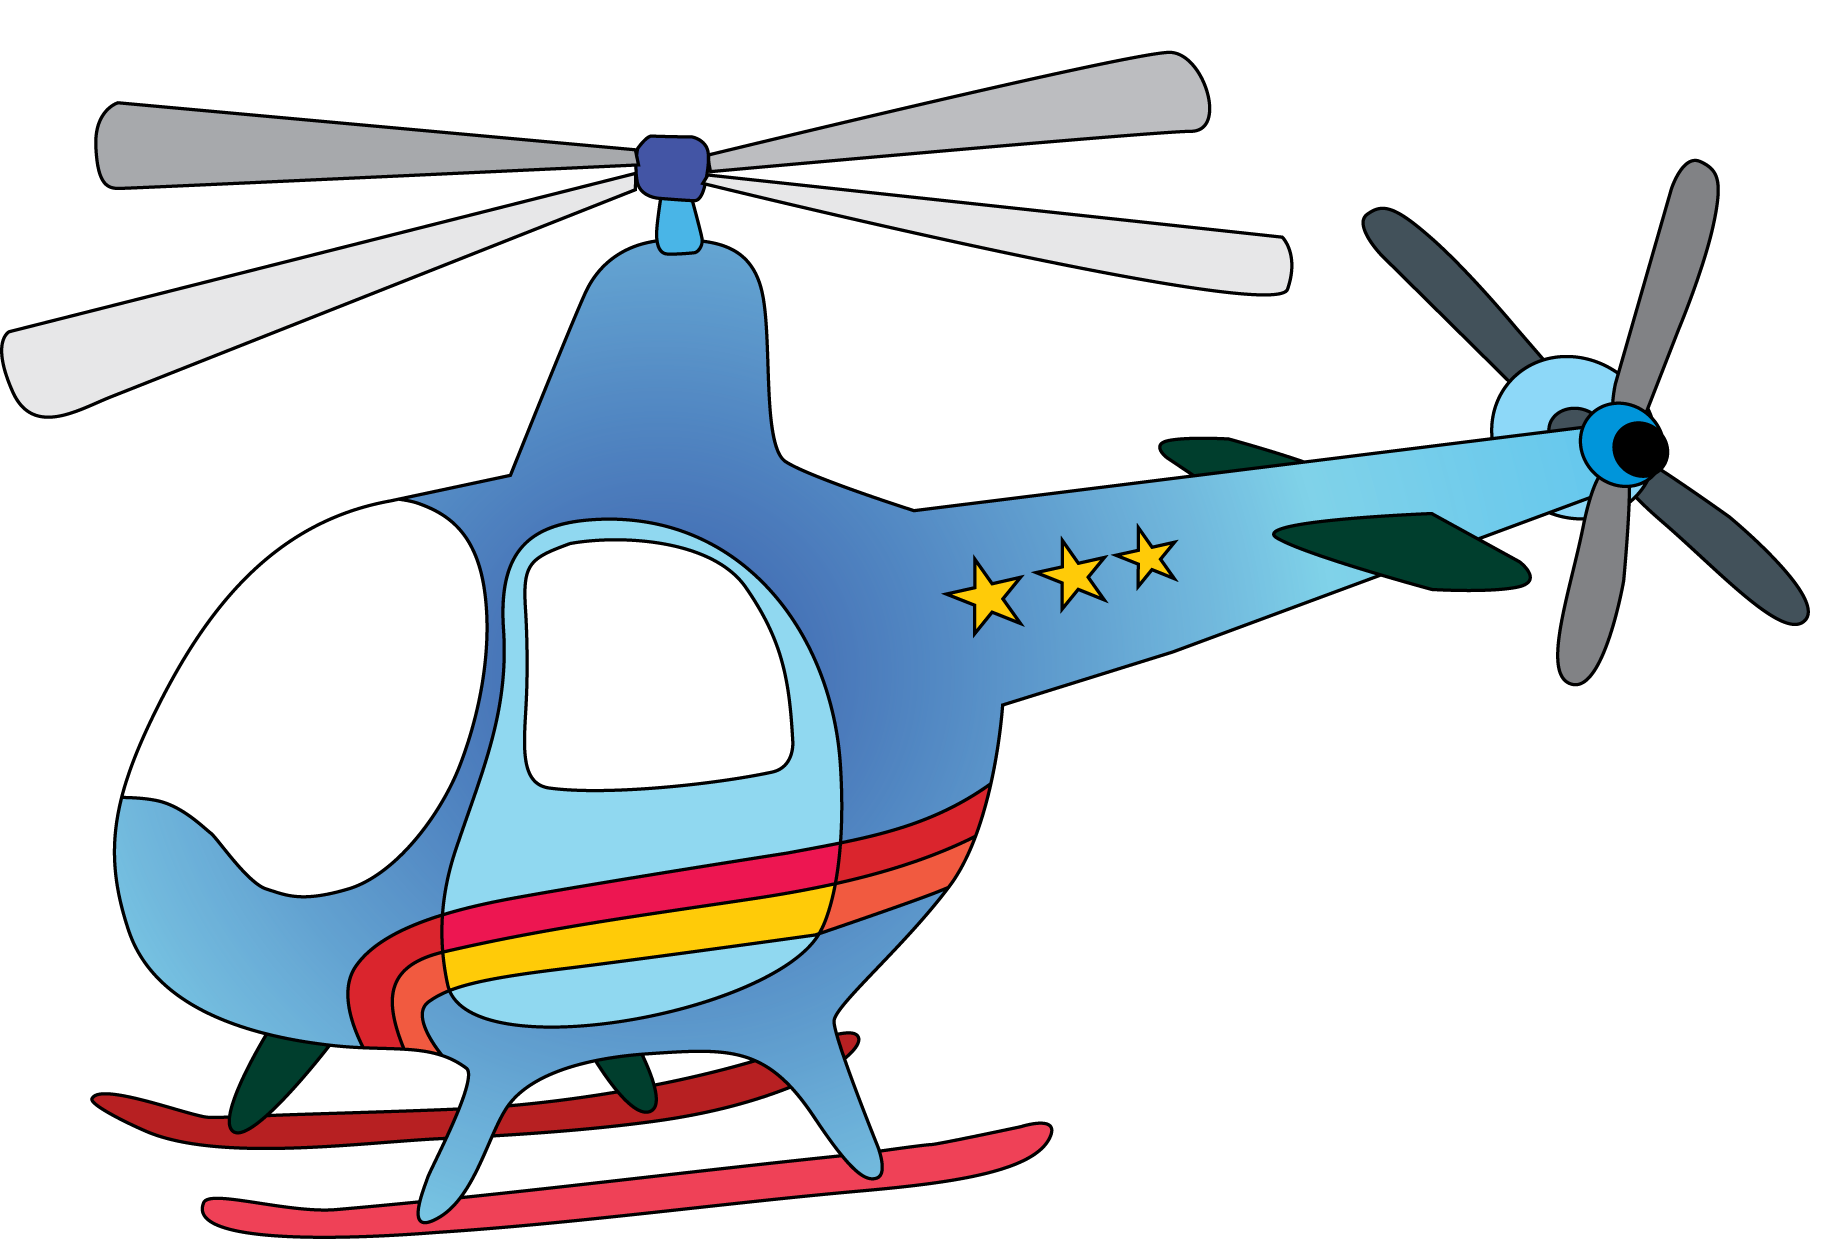 Panda free images. Helicopter clipart